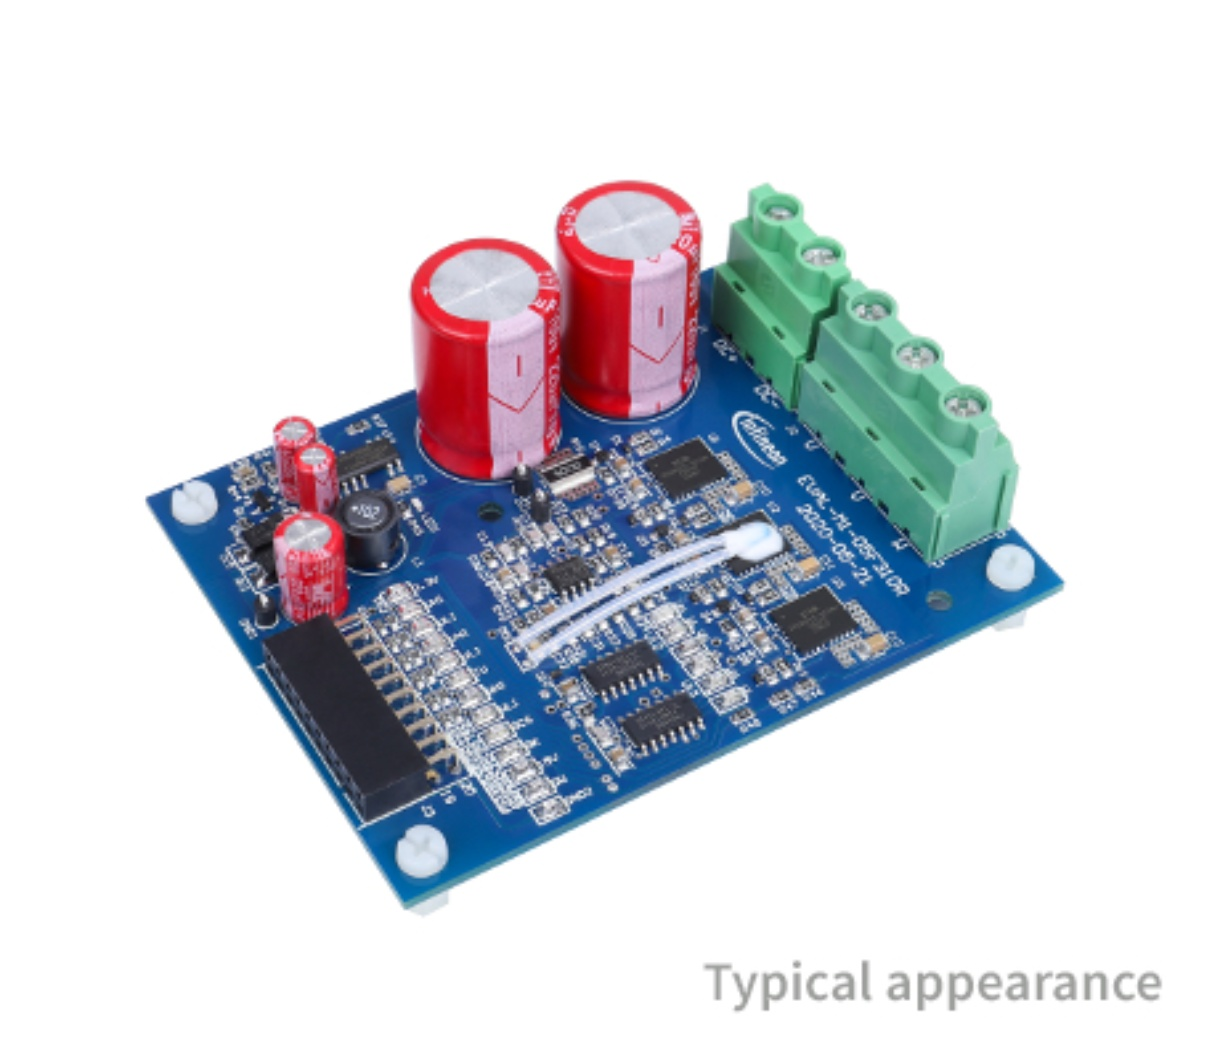 Eval M1 05f310 Infineon Technologies Bare Circuit Board For The 8051 Development Buy Online